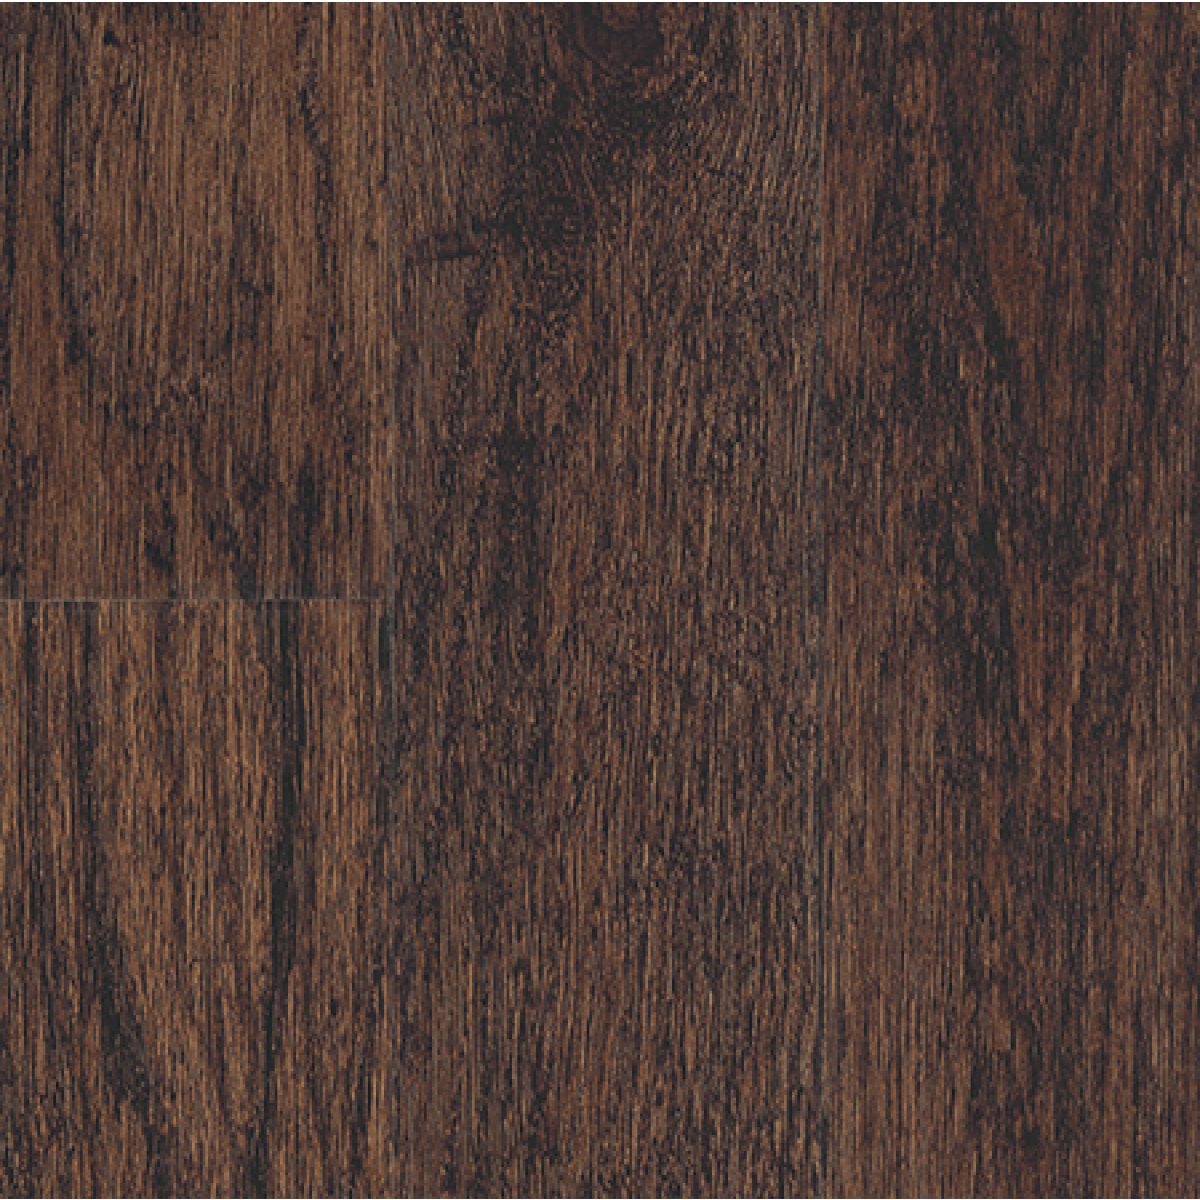 Karndean da vinci rp67 materia dark oak vinyl flooring for Dark wood vinyl flooring